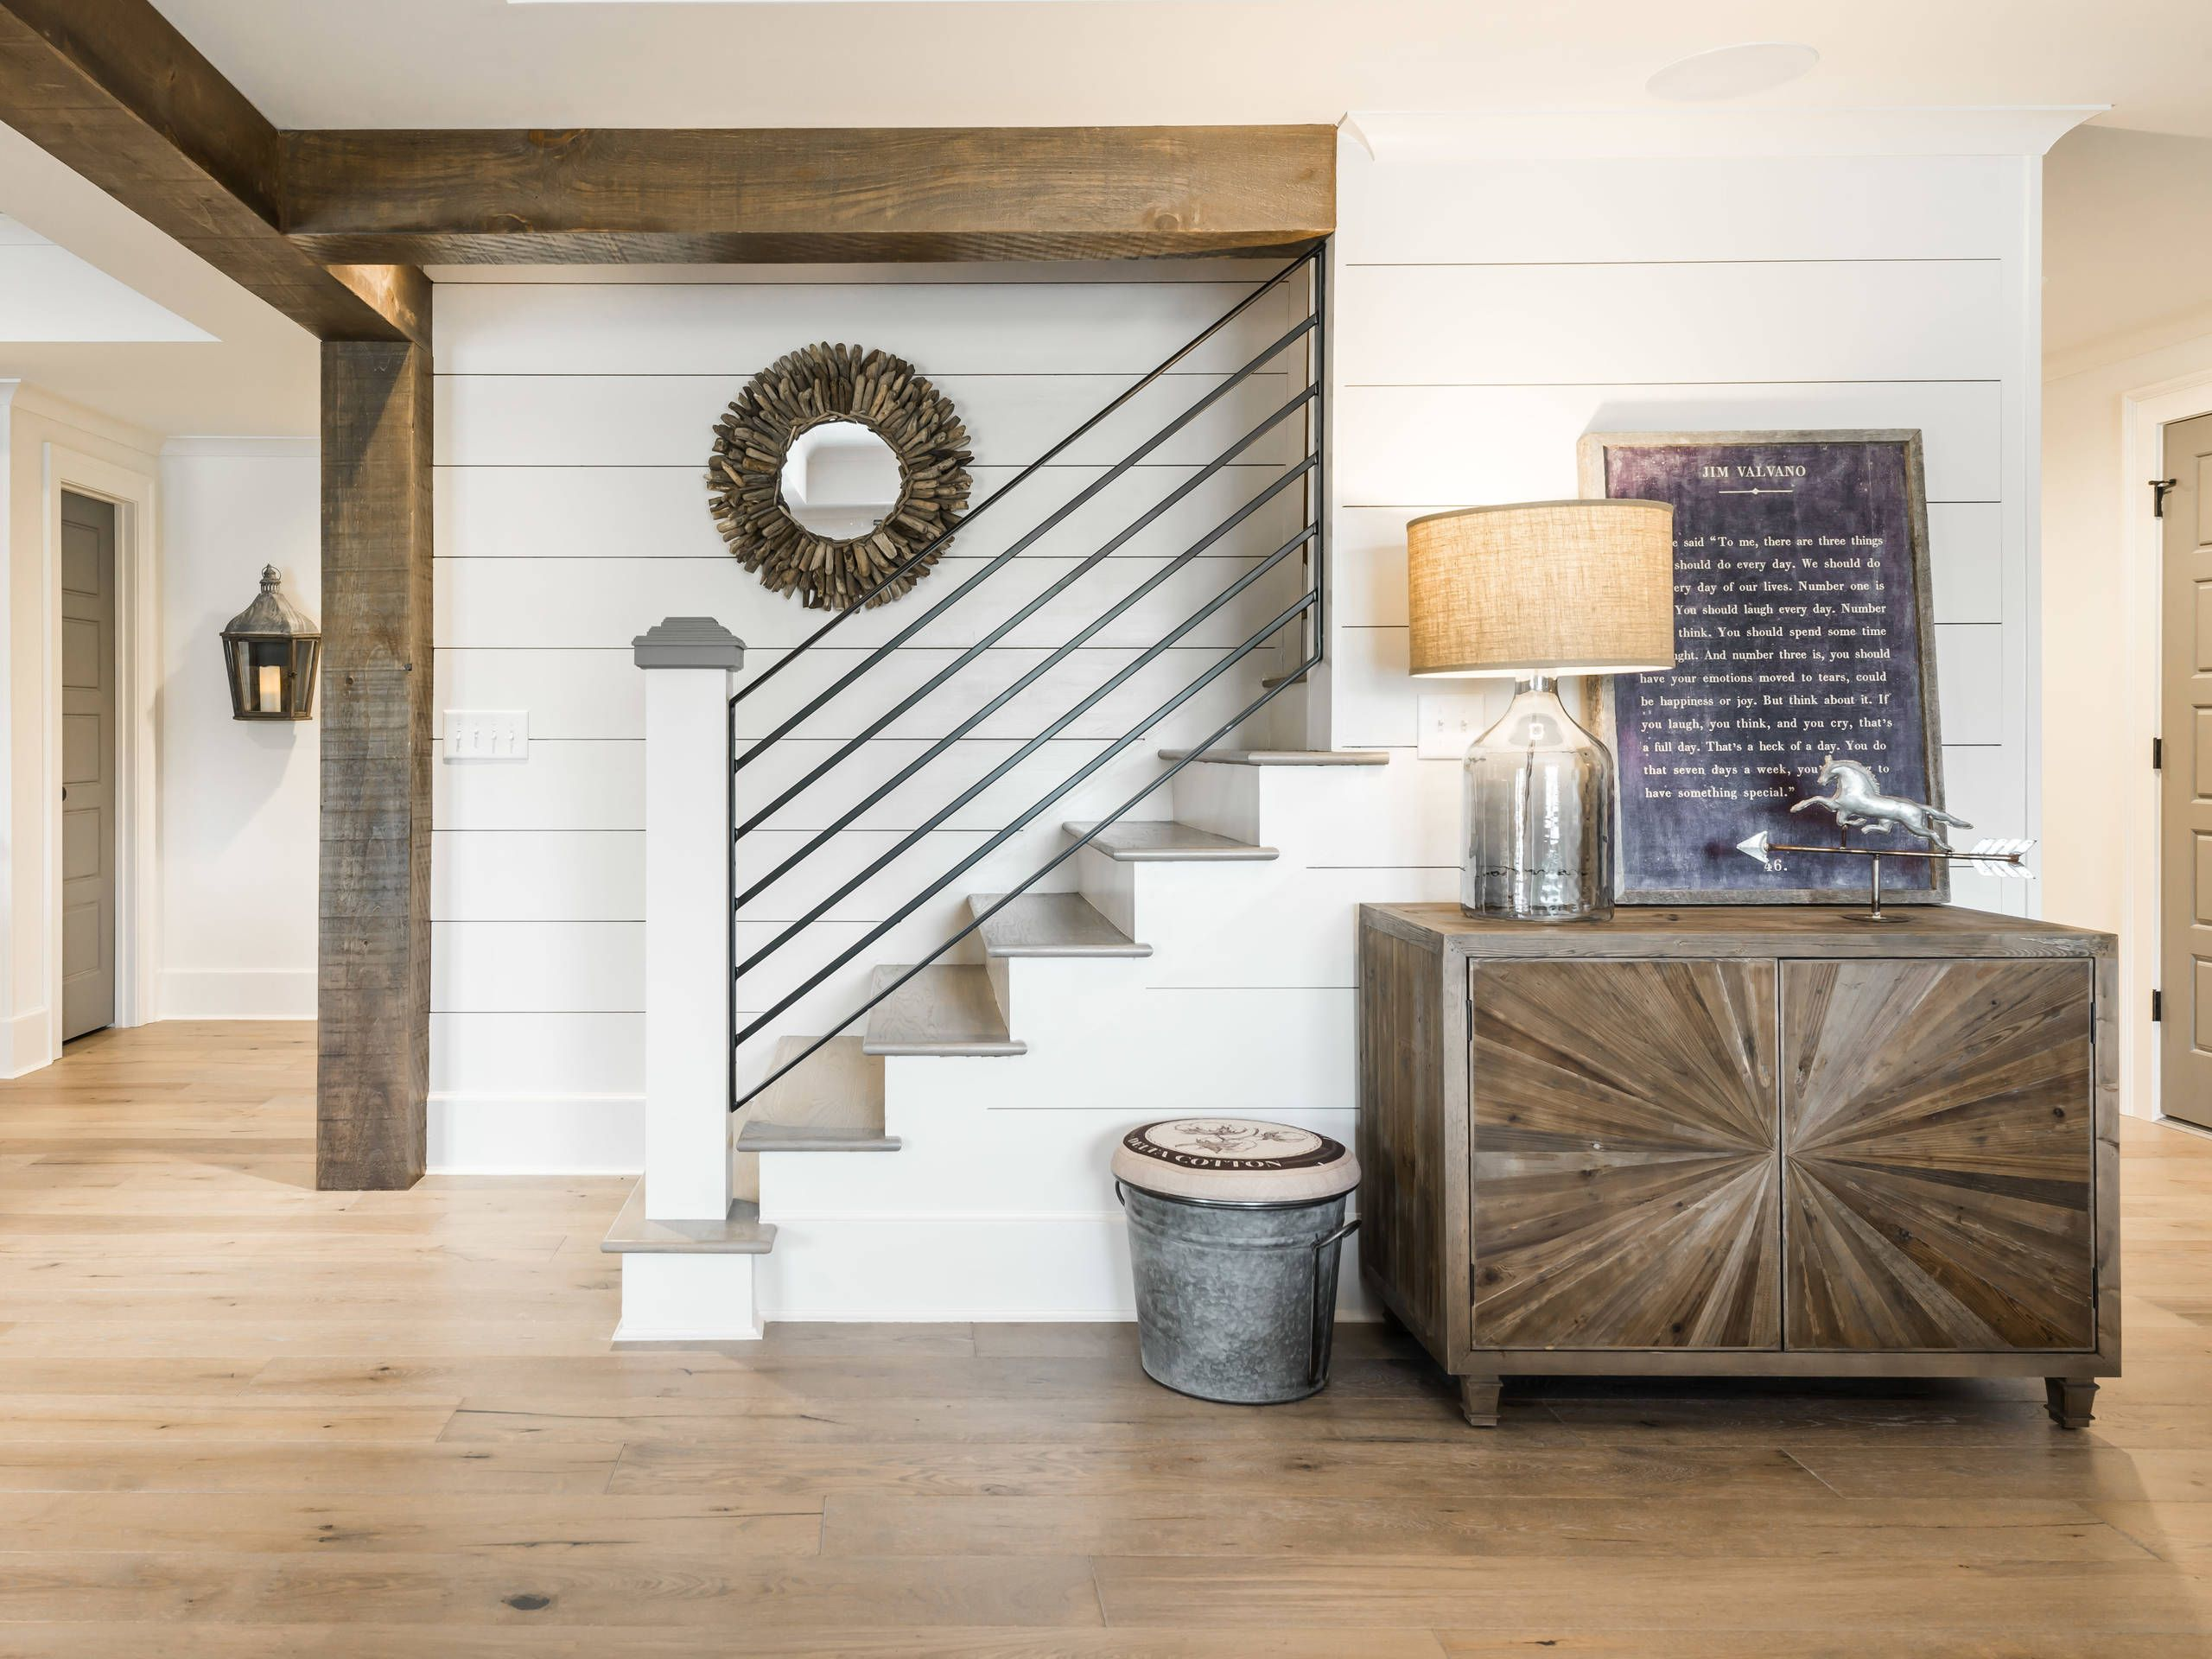 27 Perfectly Captivating Basement Design Ideas In 2020 Finish